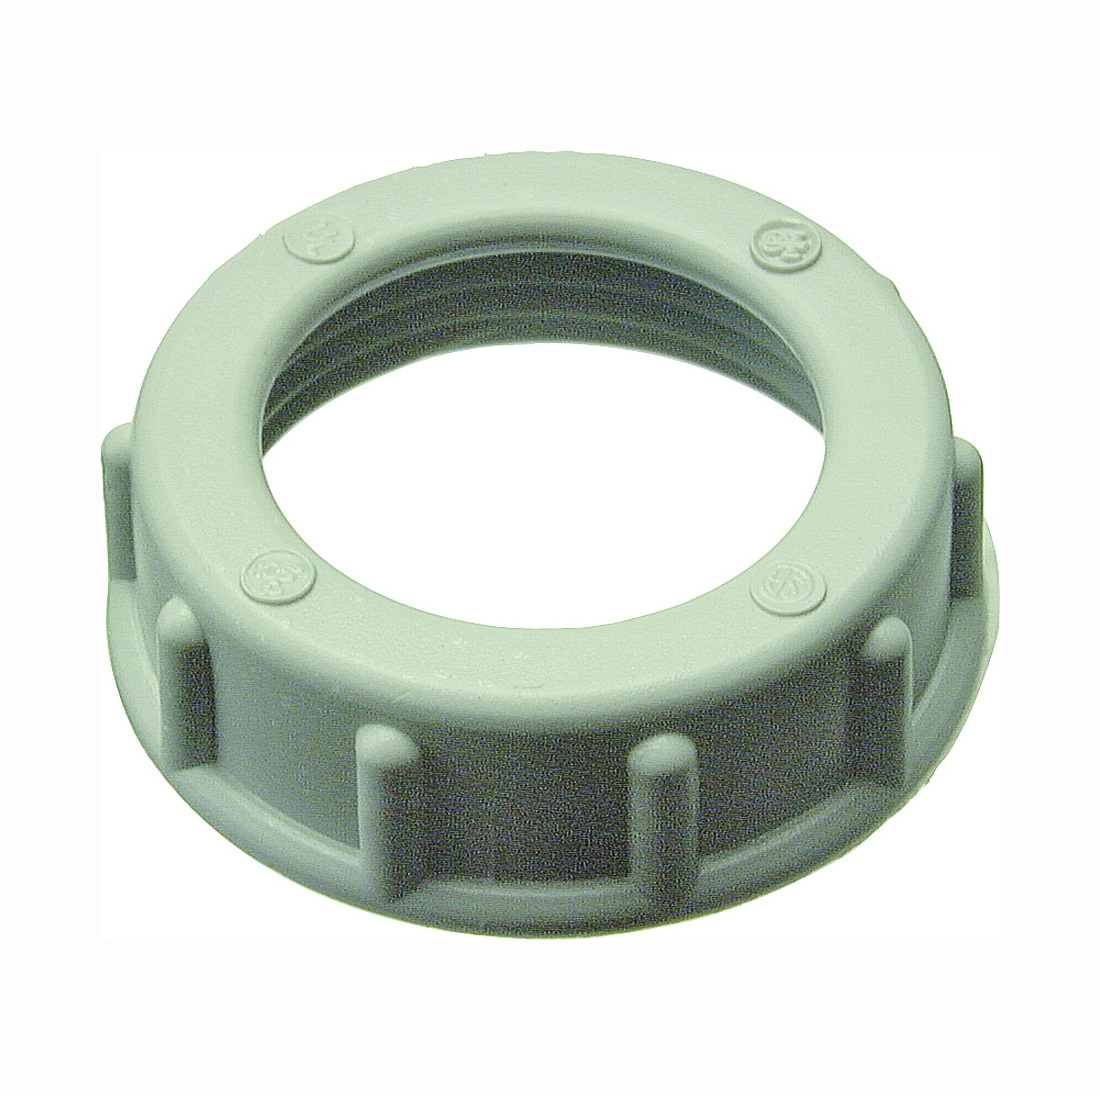 Picture of Halex 75215B Conduit Bushing, 1-1/2 in Trade, Thermoplastic